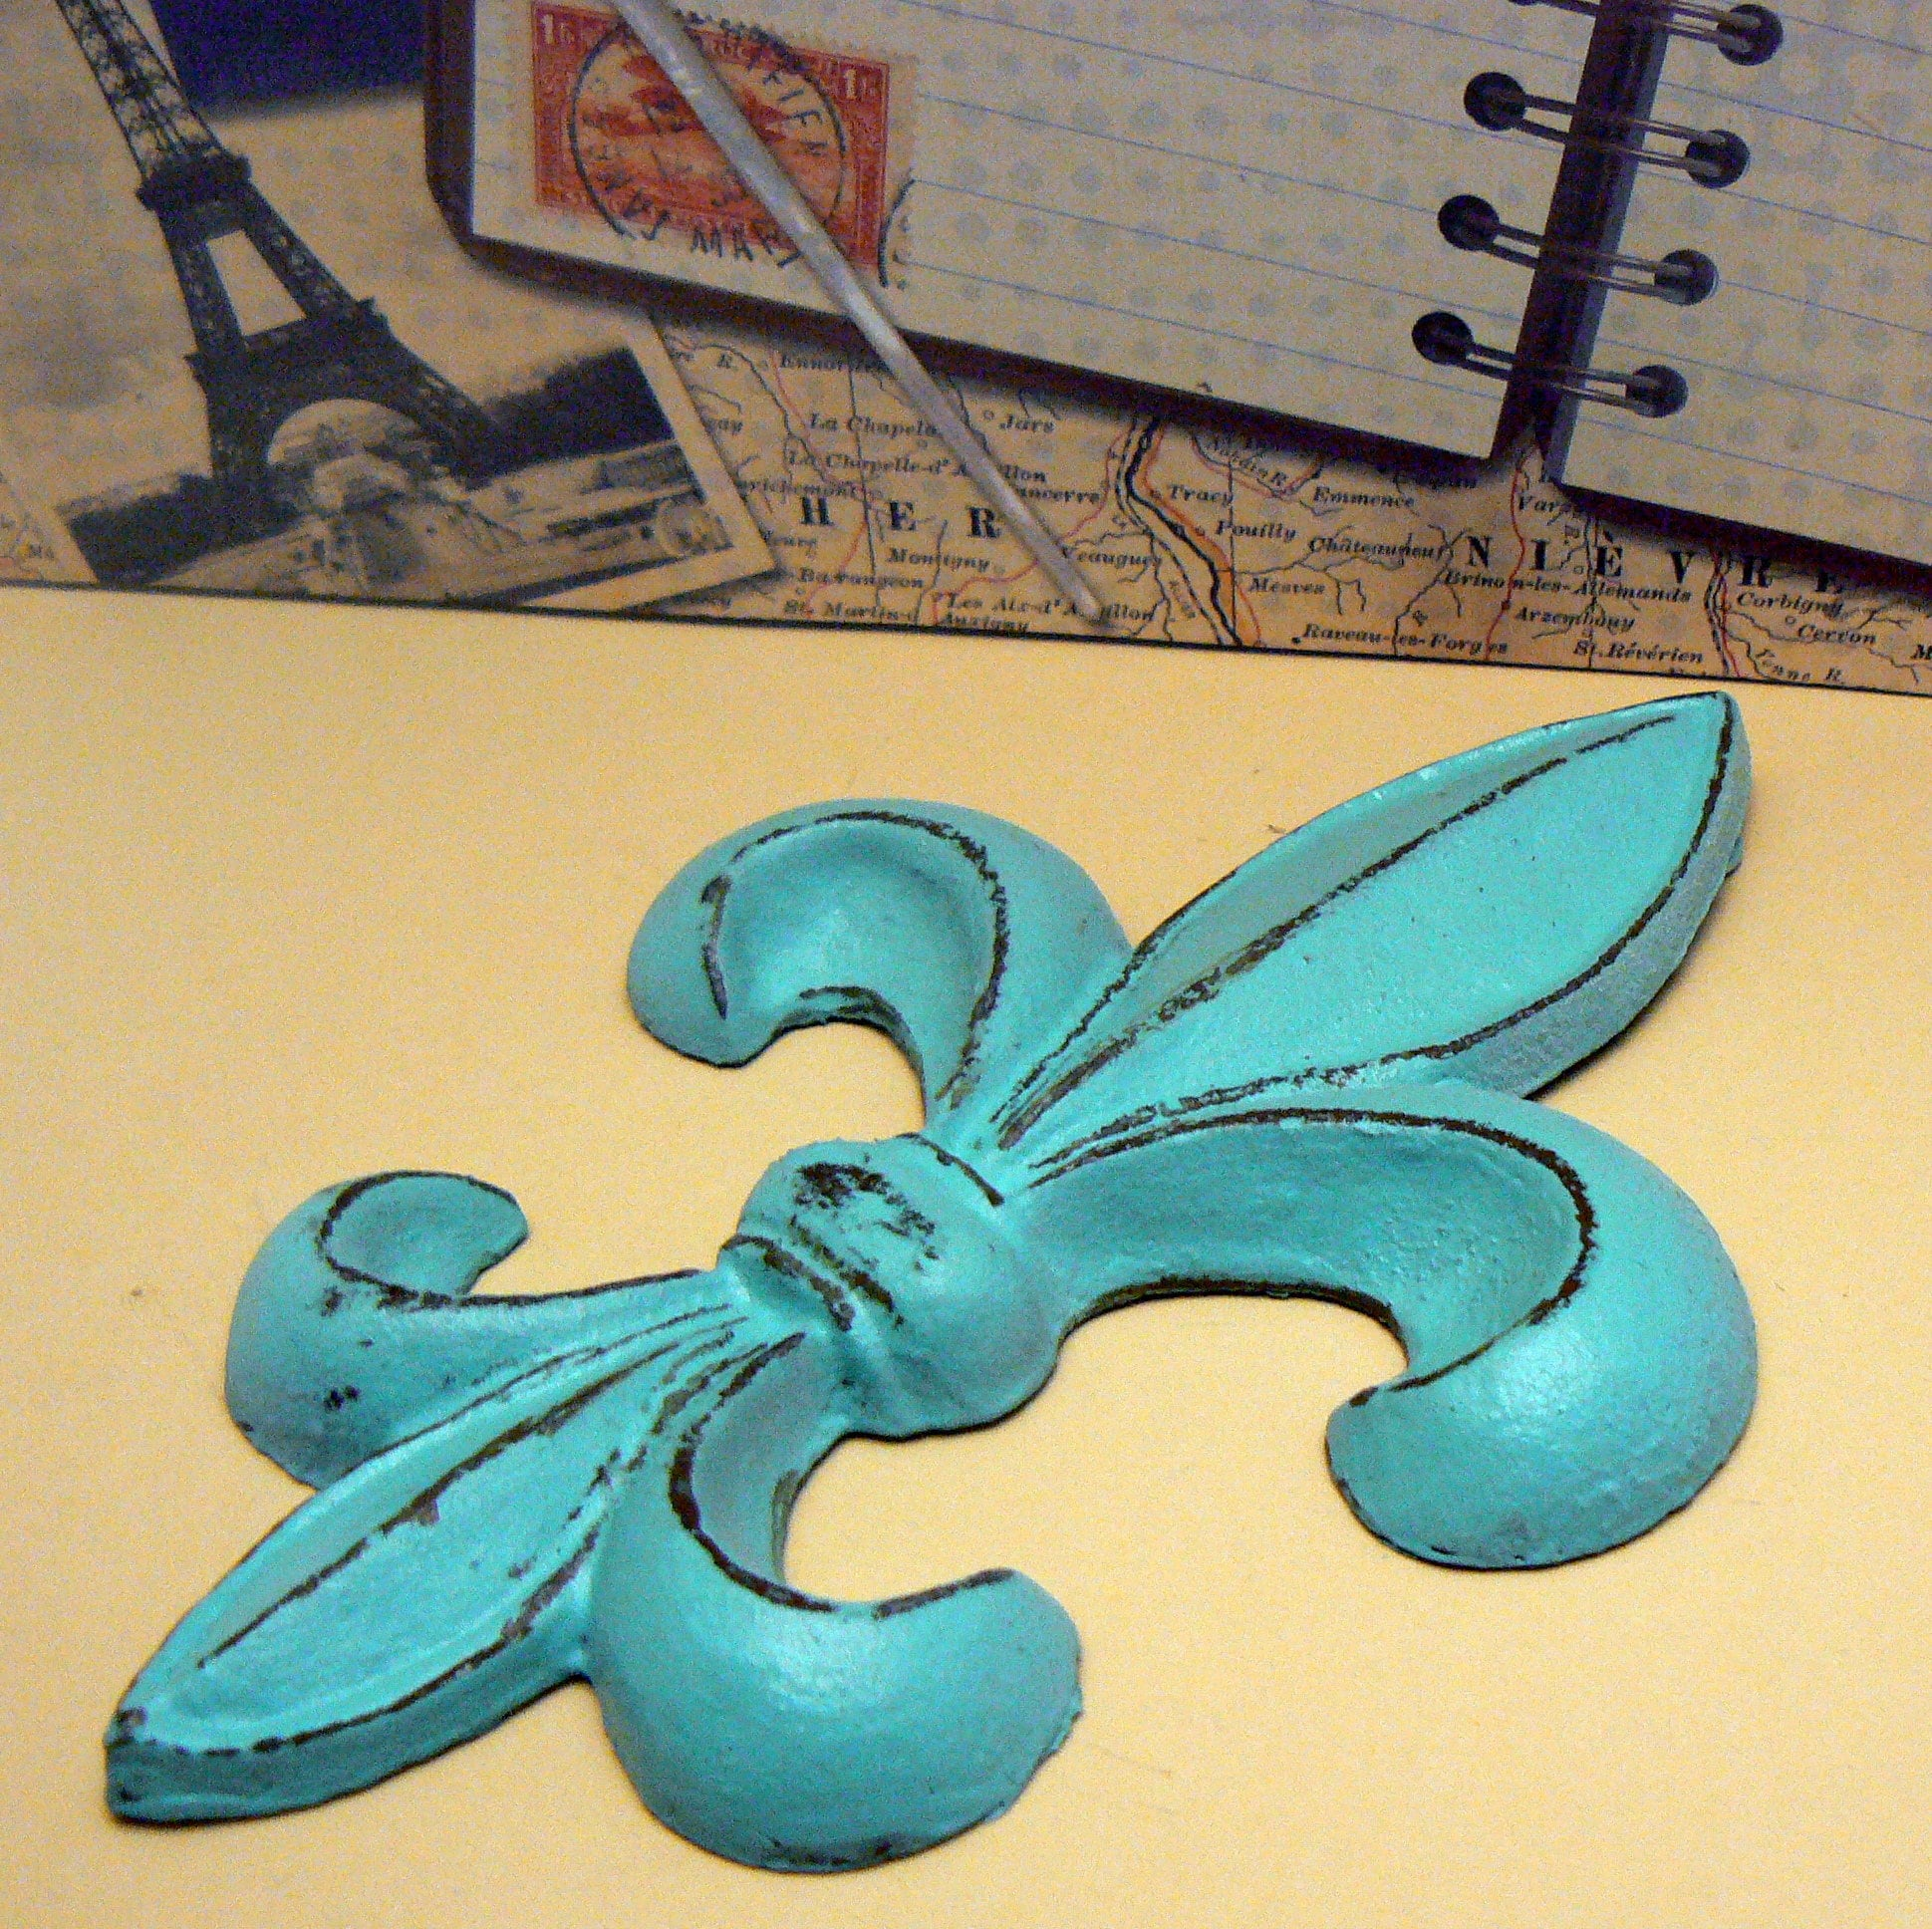 Fleur de lis FDL Cast Iron Turquoise Shabby Chic Wall Art Home Decor